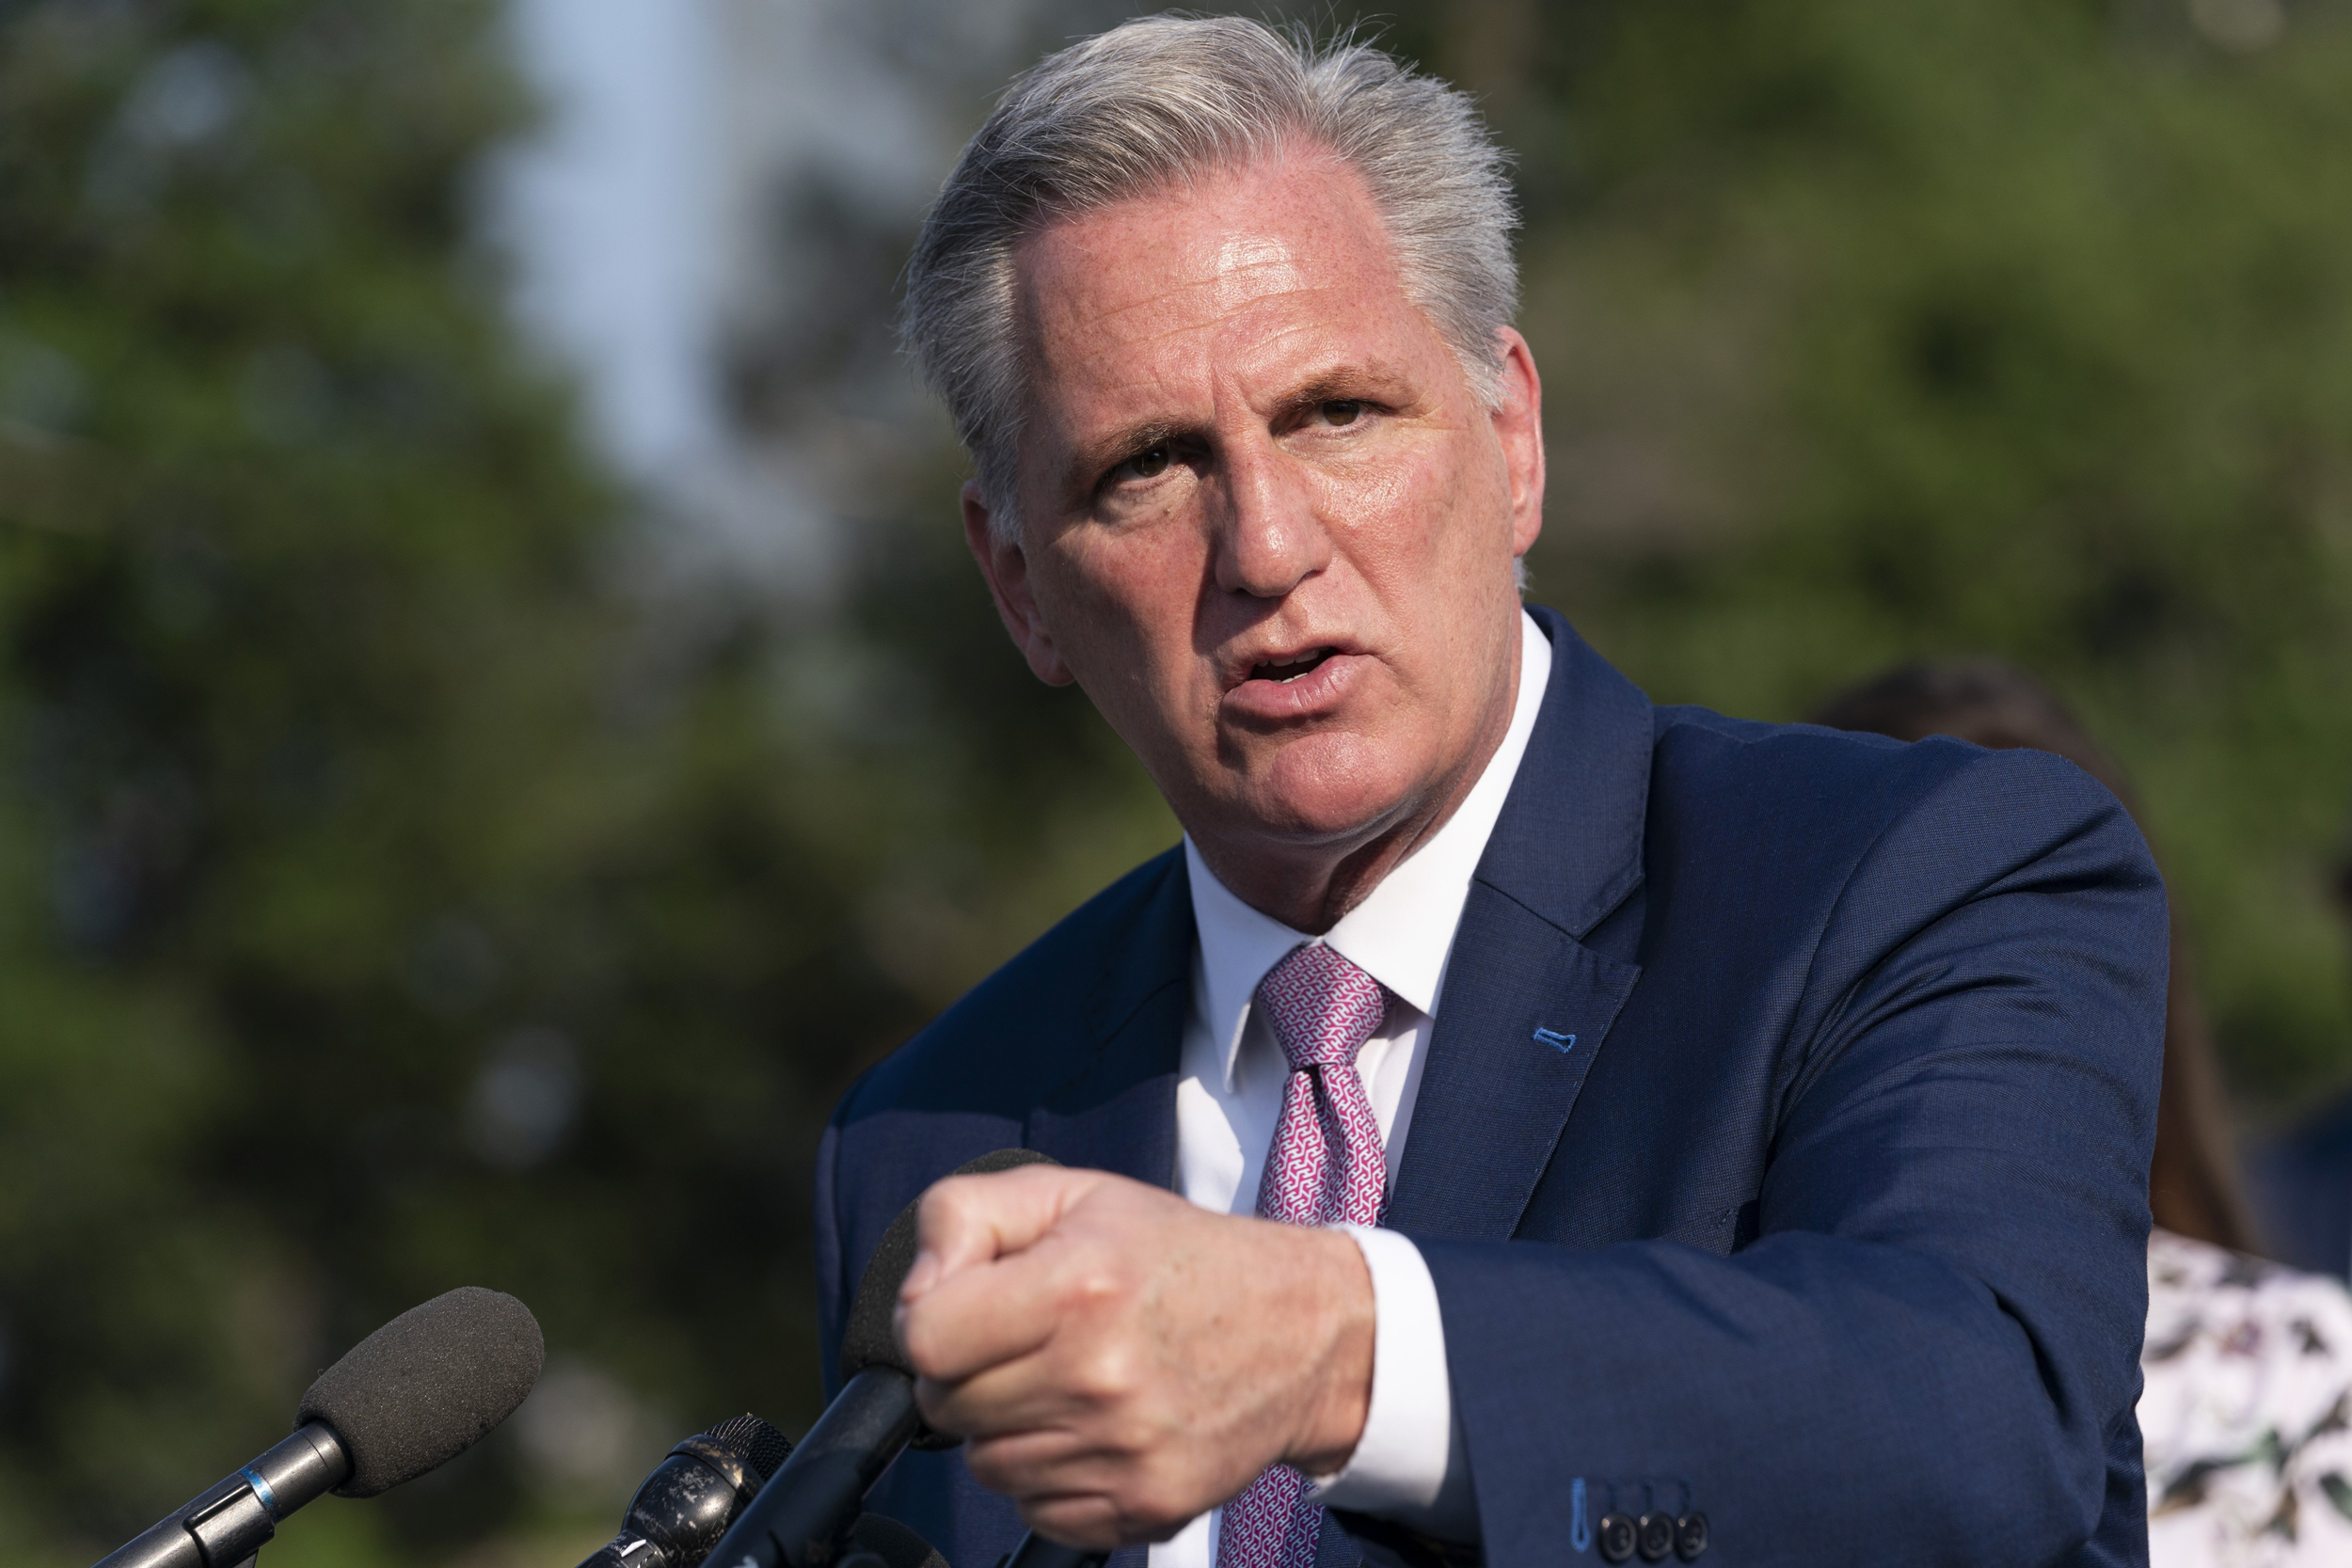 McCarthy slammed for joking 'it would be hard not to hit' Pelosi with a gavel